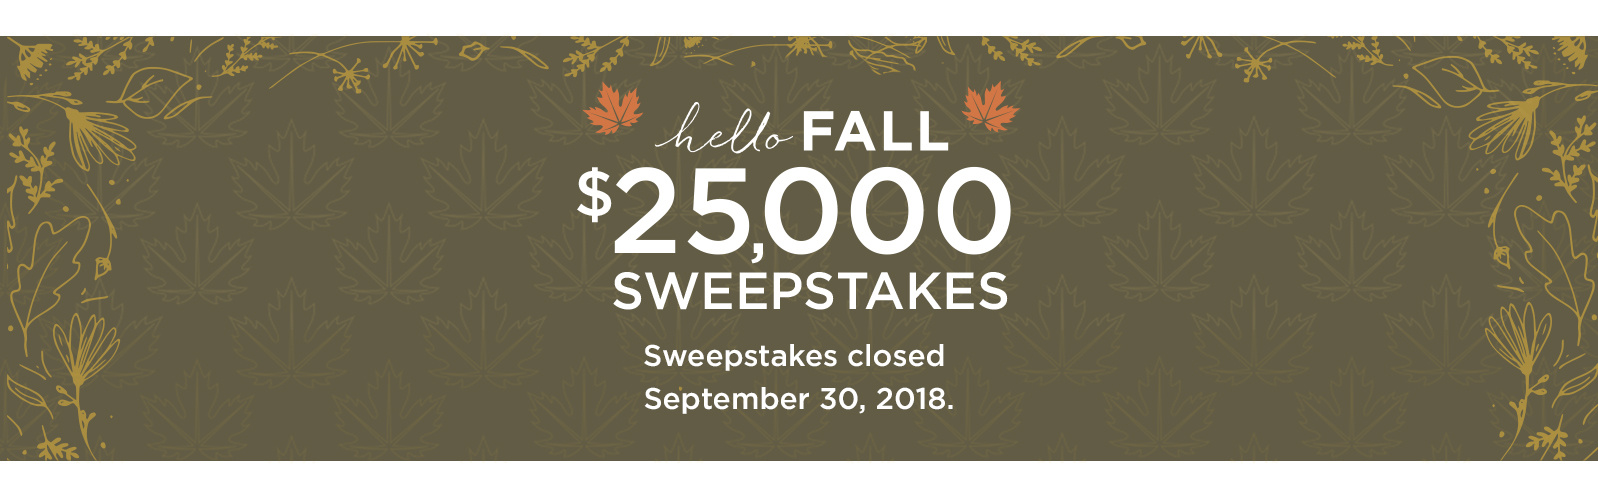 Sweepstakes Winners — QVC com